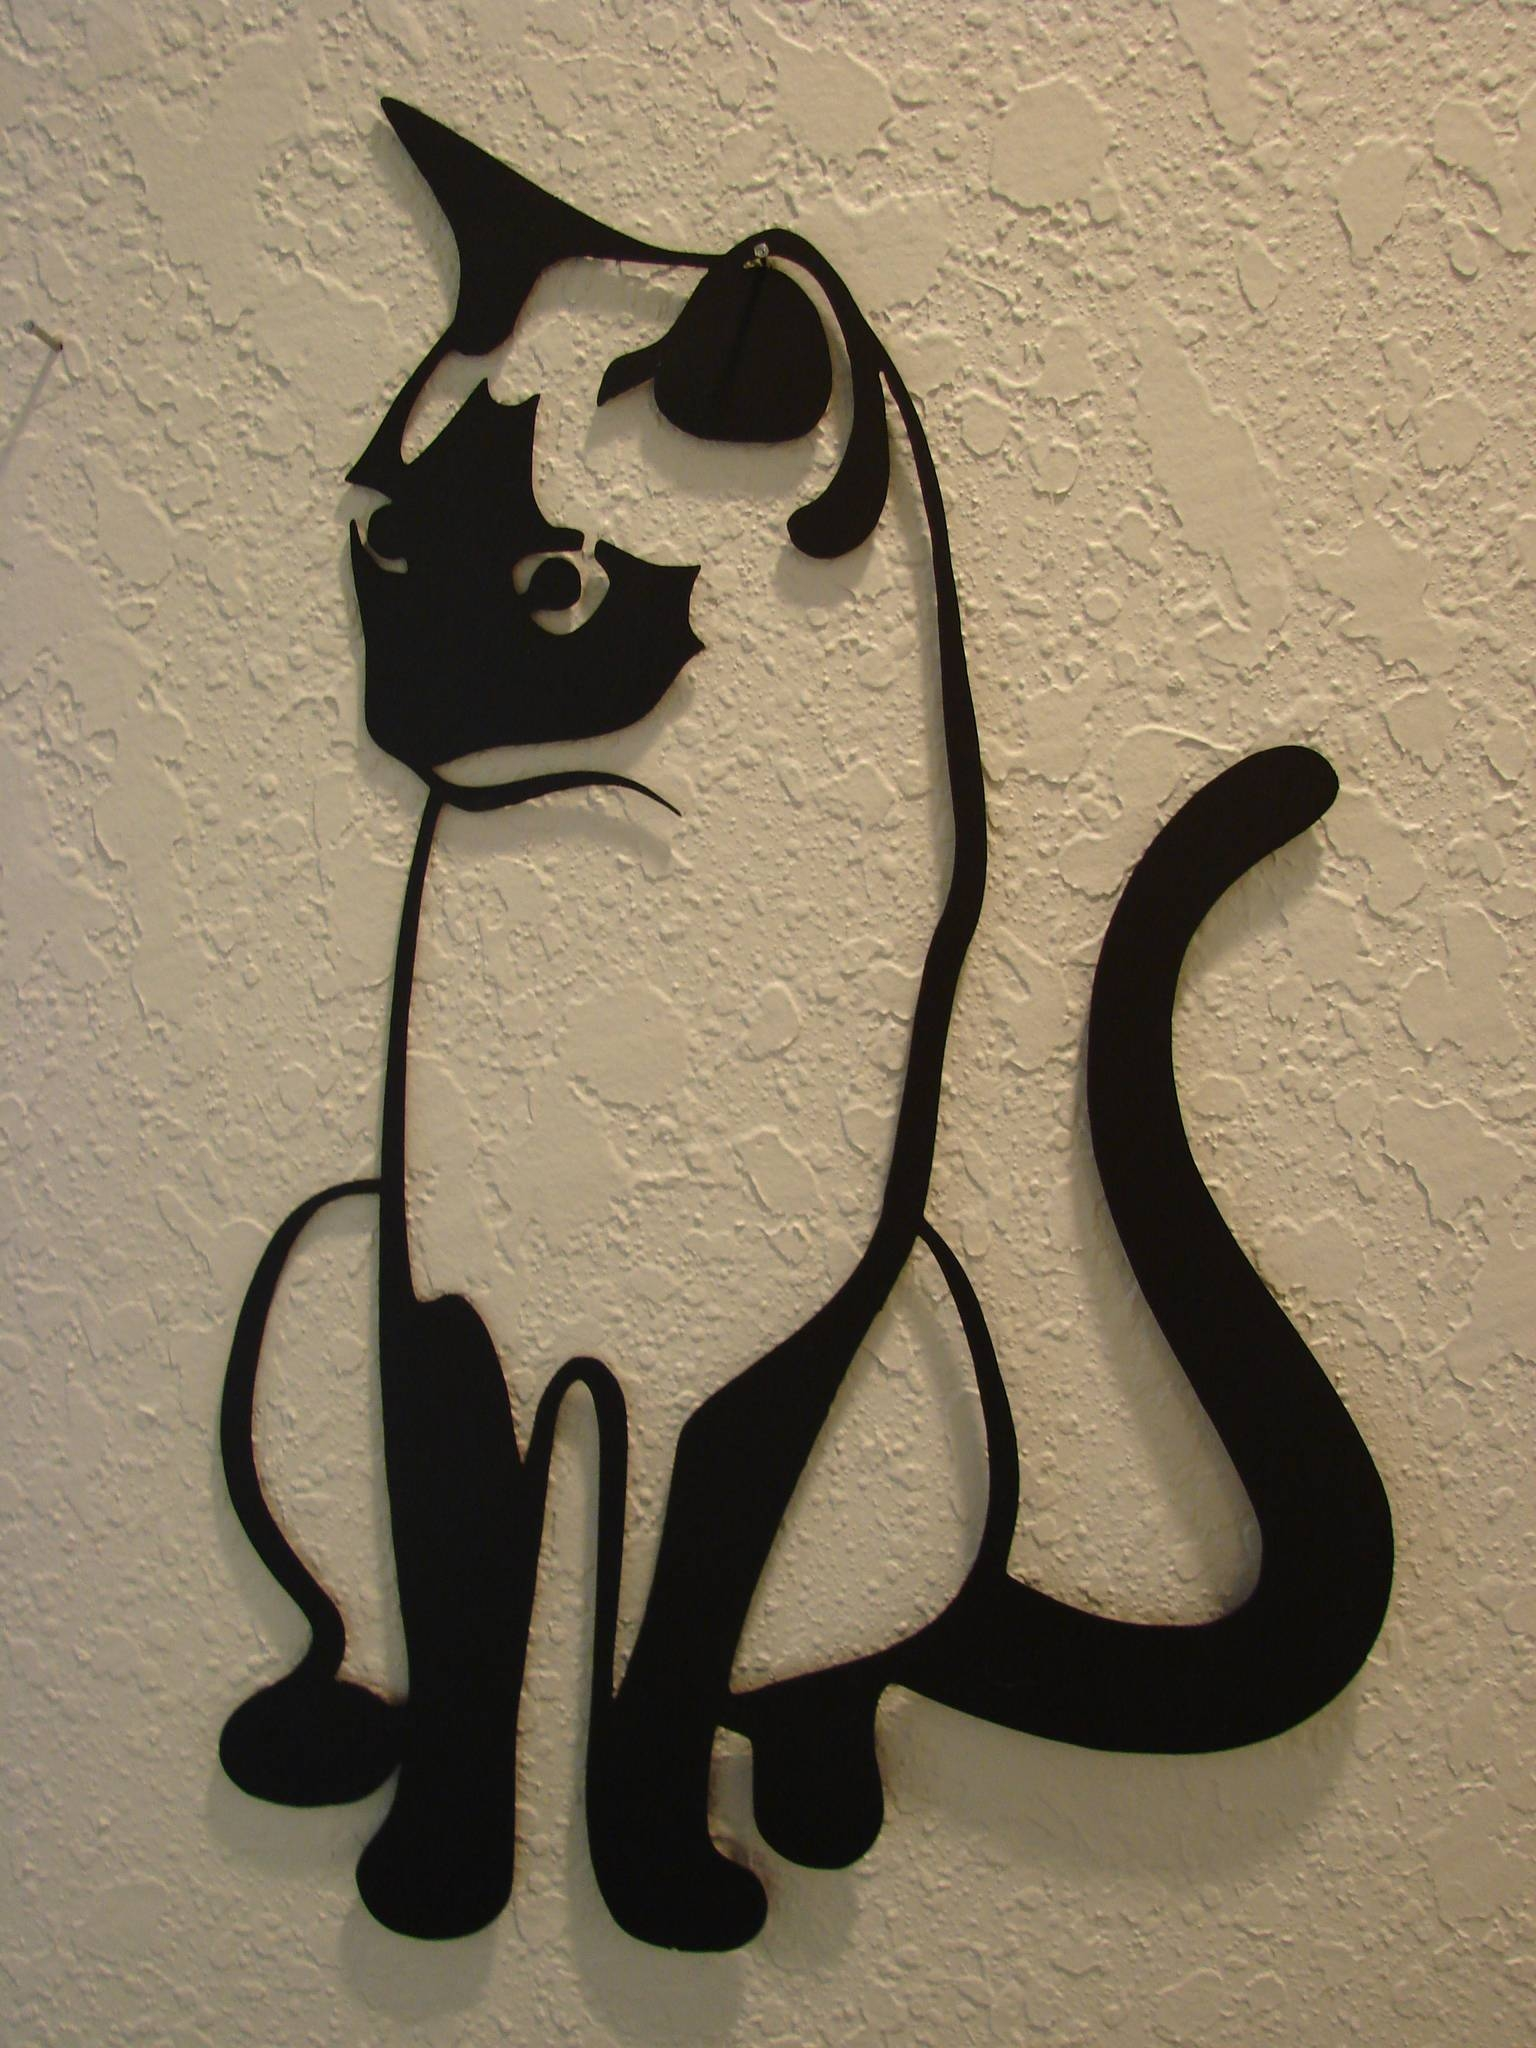 16 Gauge Plasma Cut Kitty Cat Metal Wall Art – : Intended For Most Popular Cat Metal Wall Art (View 1 of 20)